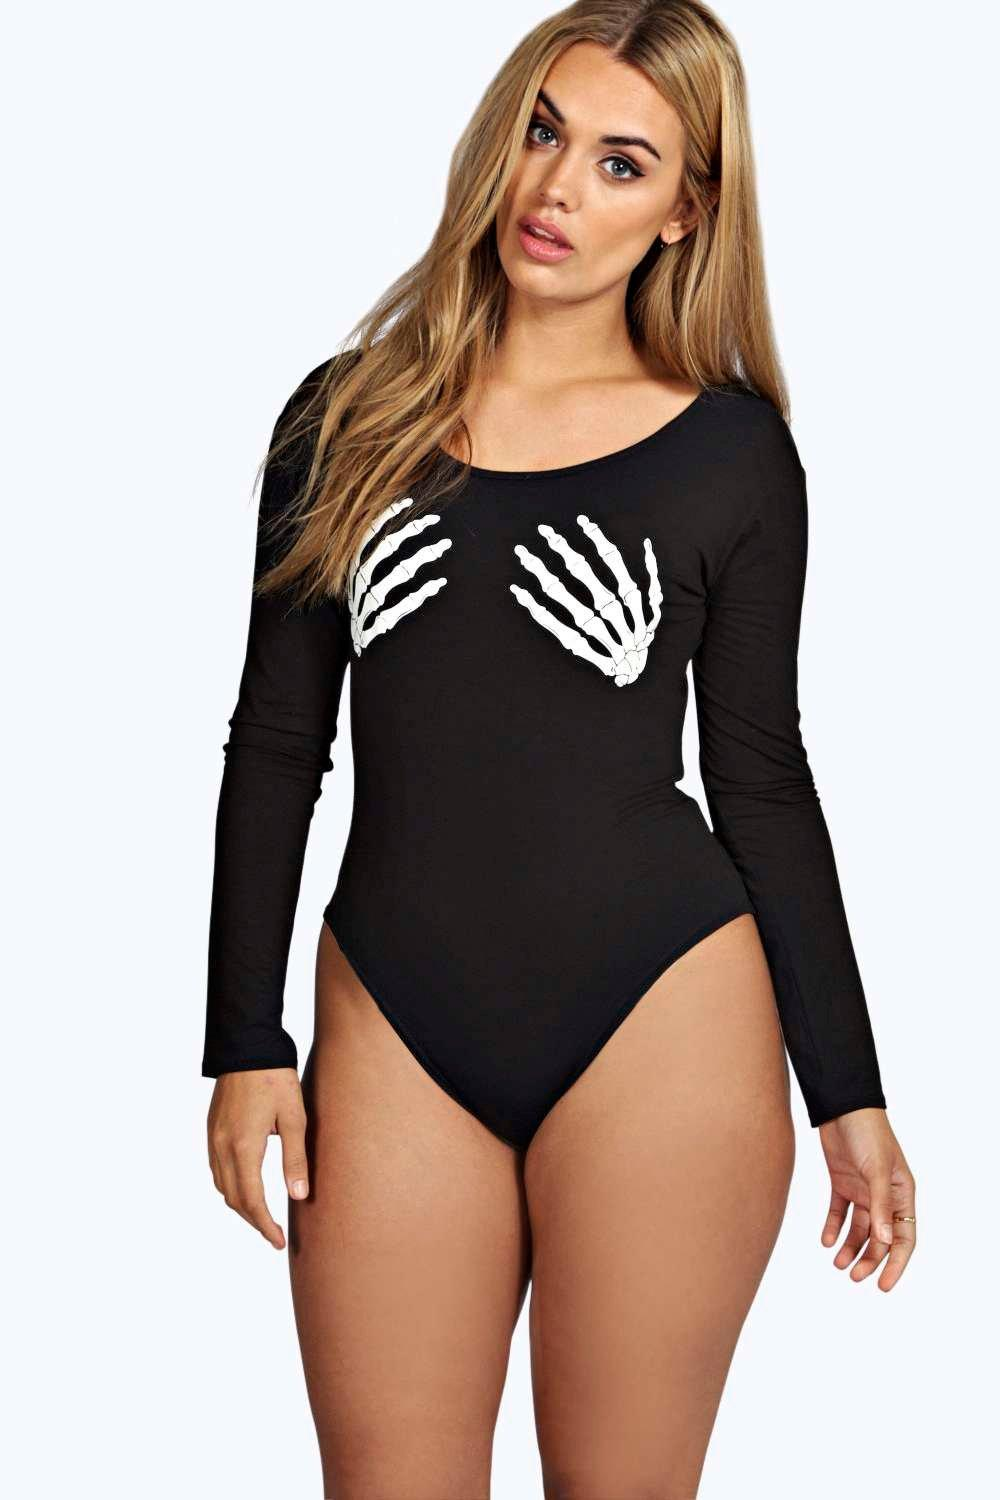 Plus Zoe Glow In The Dark Skeleton Halloween Body